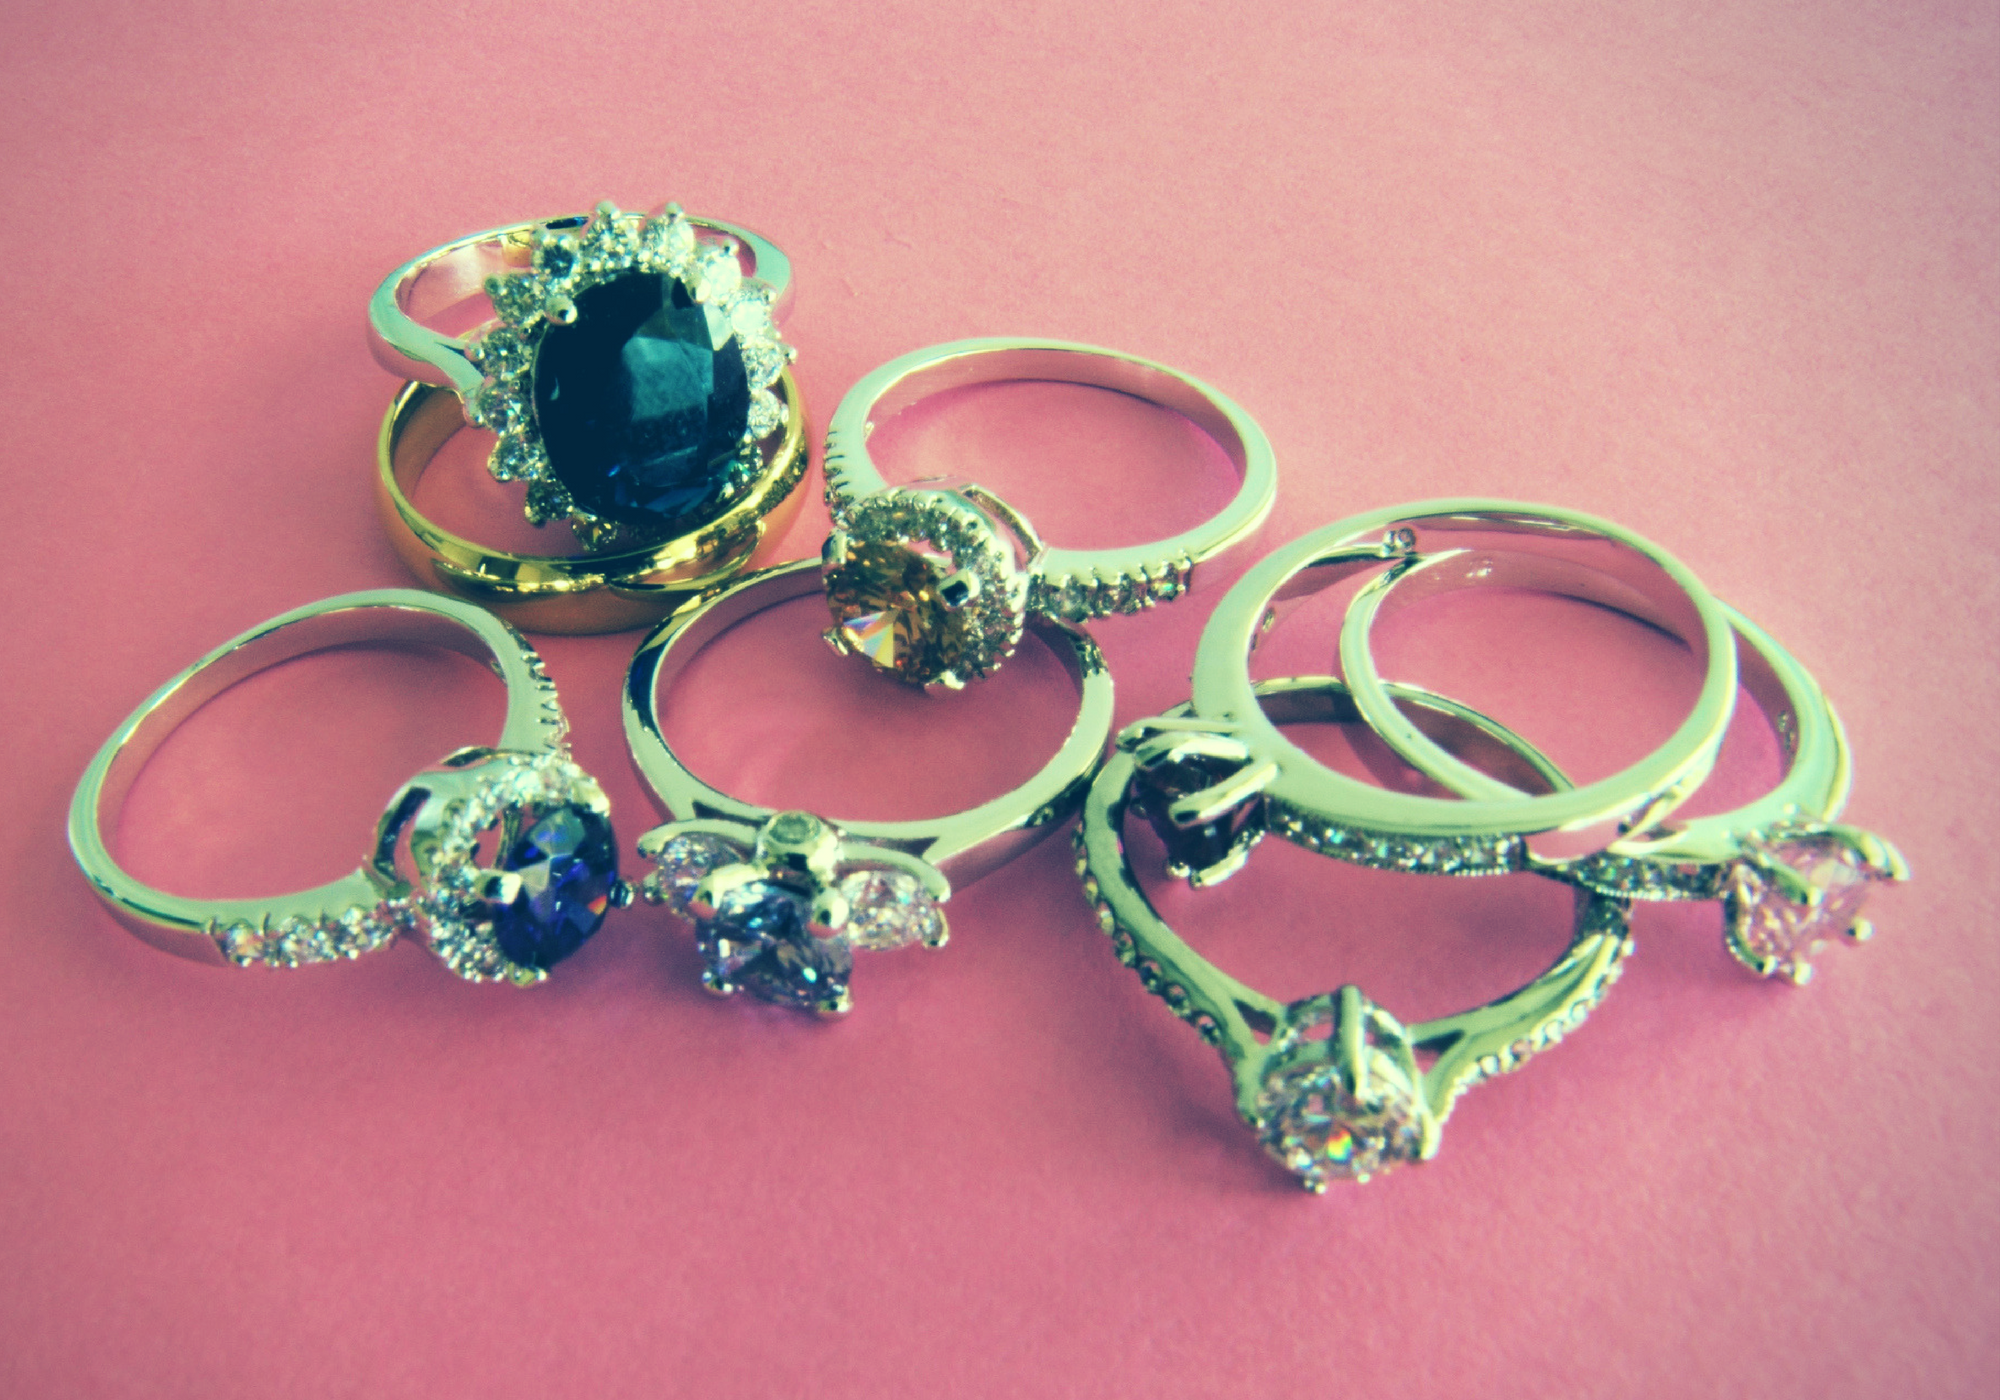 Vintage Engagement Rings Guide | Estate Sale Blog